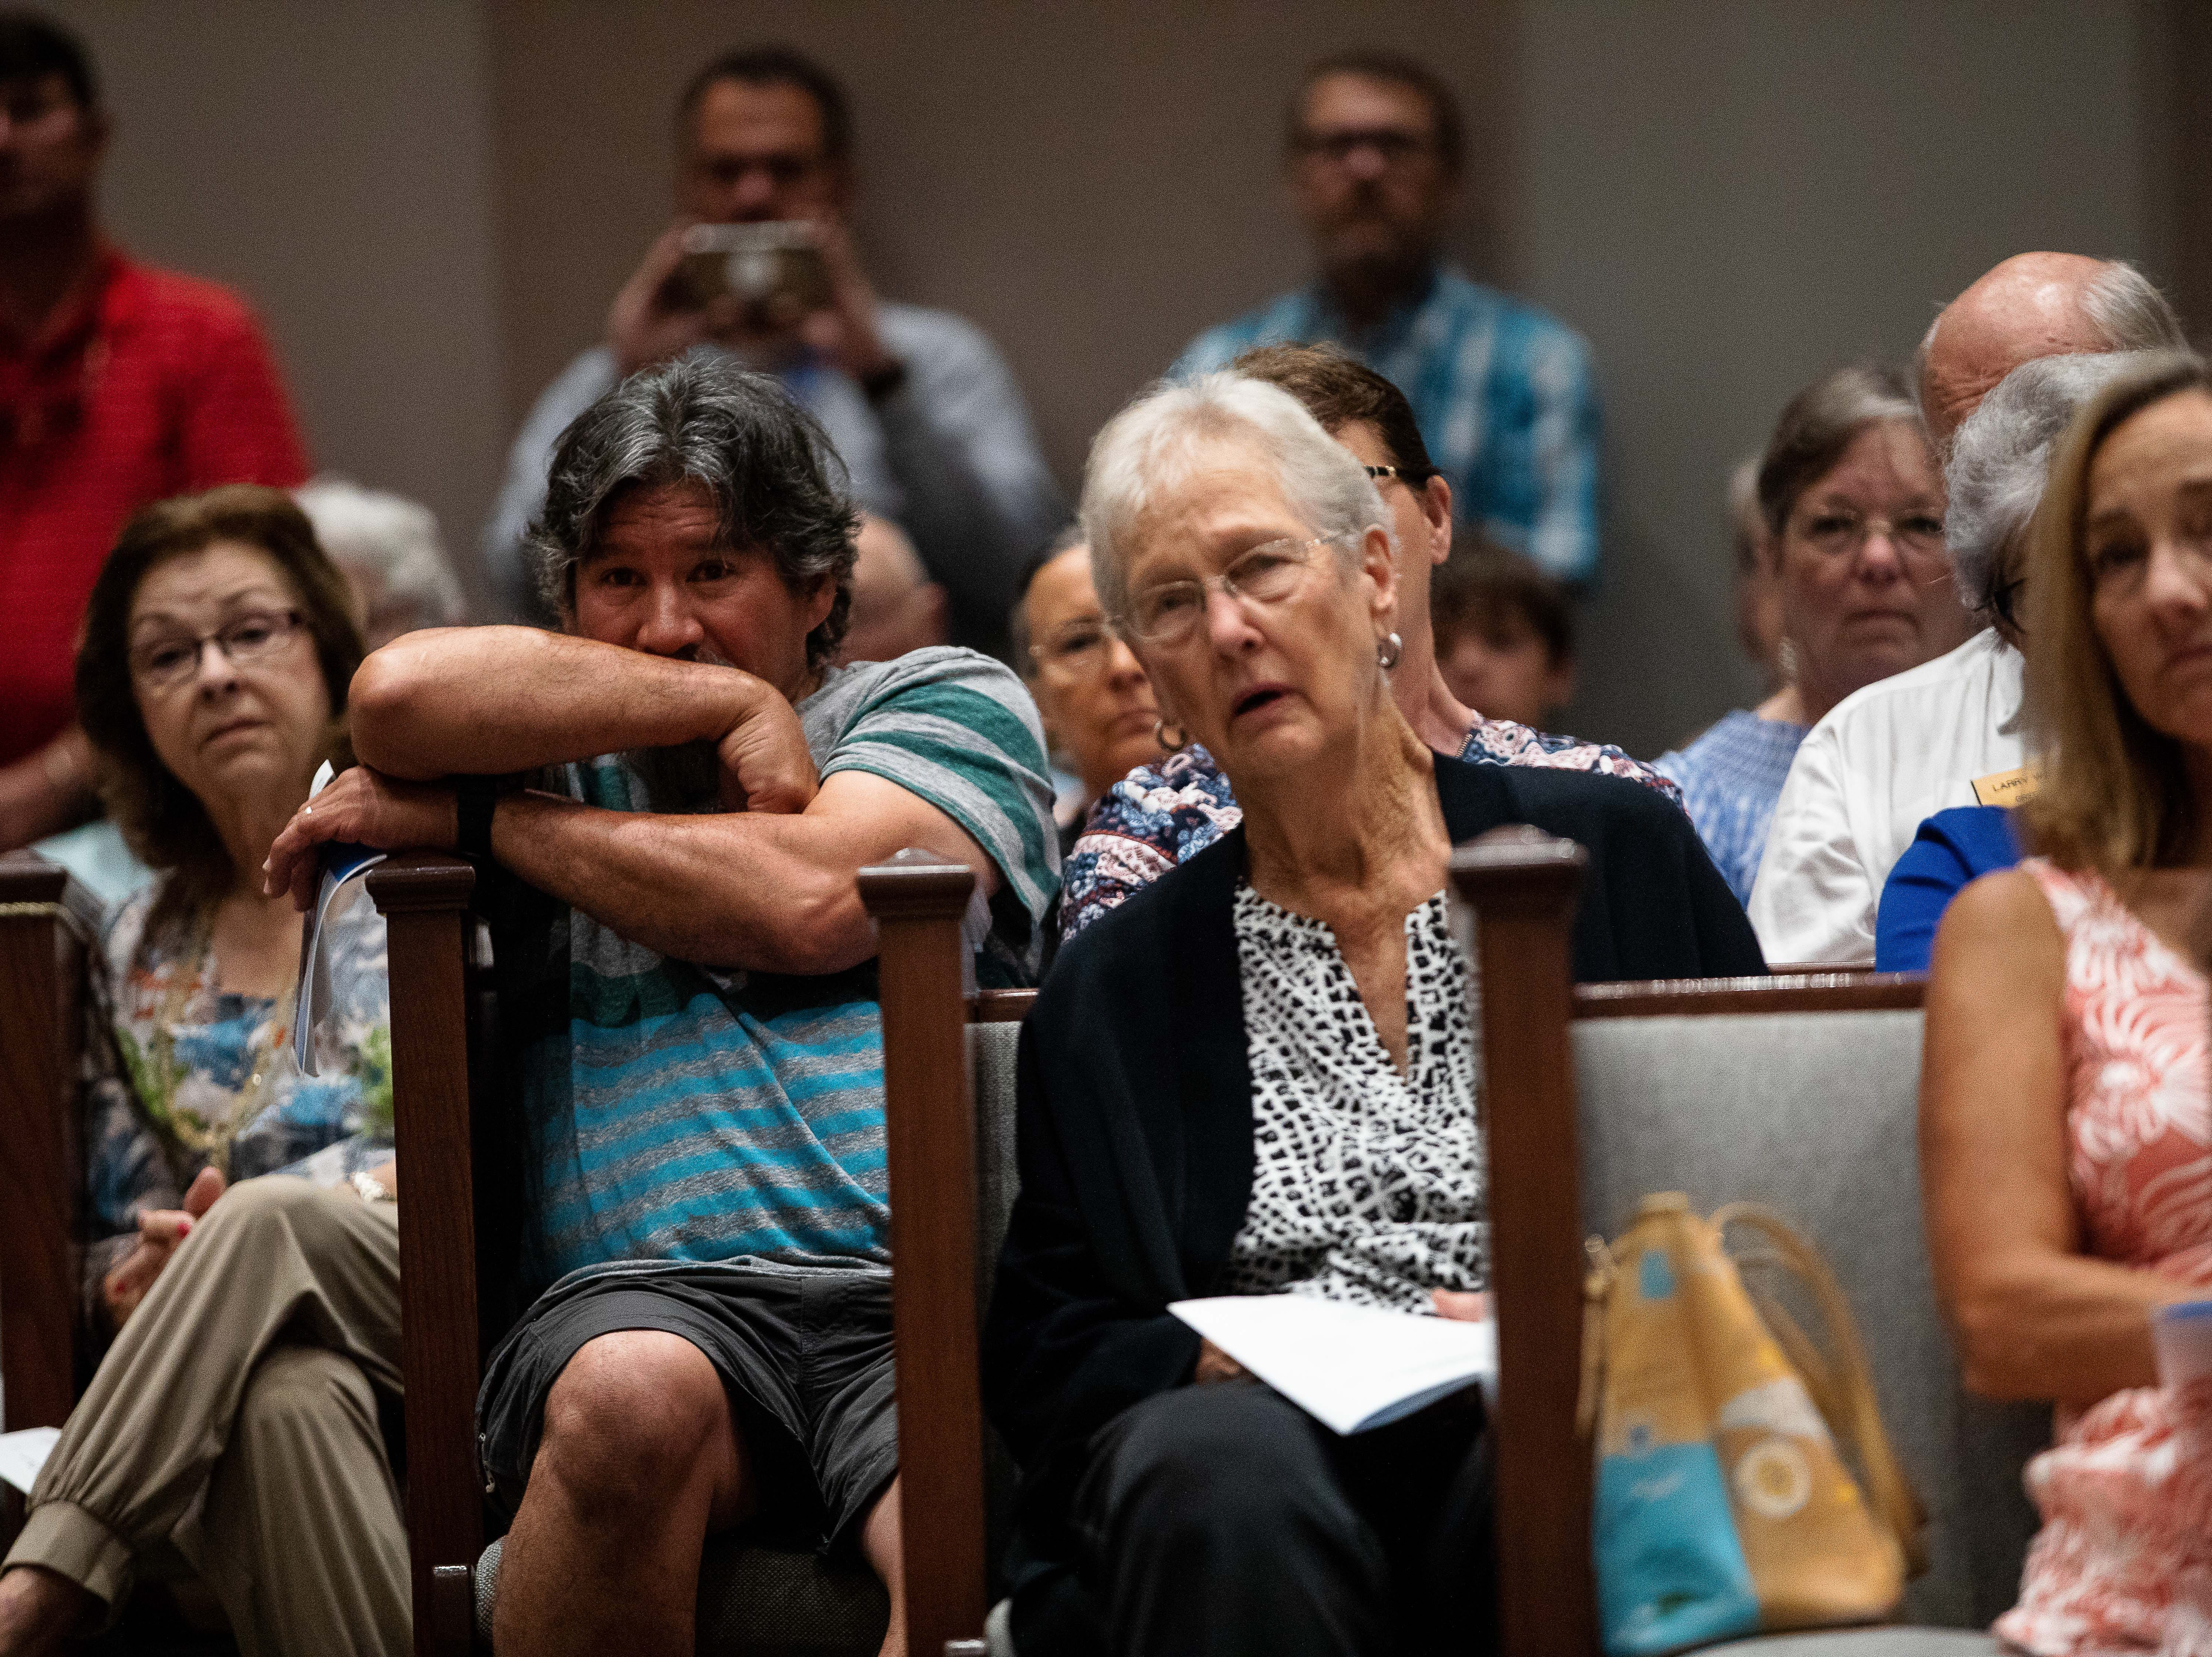 People listen to Cynthia Williams talk about her experience with Hurricane Harvey and its aftermath at the First Baptist Church of Rockport during a Hurricane Harvey anniversary service on Sunday, Aug. 26, 2018.